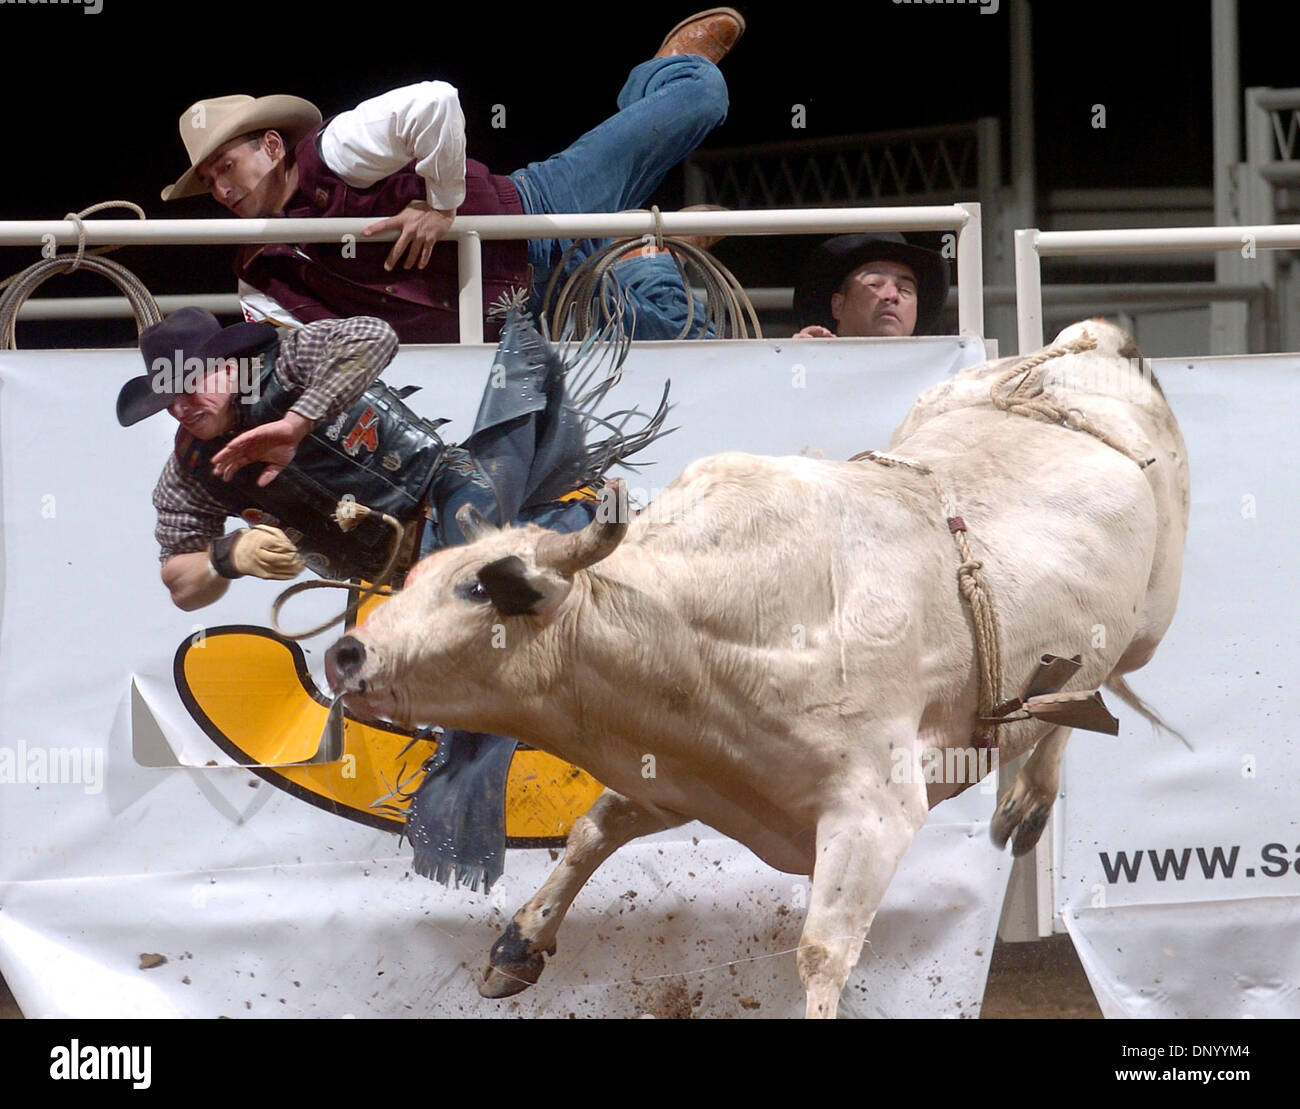 Feb 18, 2006; San Antonio, TX, USA; Cowboys jump out of the arena as Ardie Maier of Timberlake, South Dakato gets thrown off his ride during the bull riding competition at the rodeo Saturday night.  Mandatory Credit: Photo by T.R./San Antonio Express-News/ZUMA Press. (©) Copyright 2006 by San Antonio Express-News - Stock Image